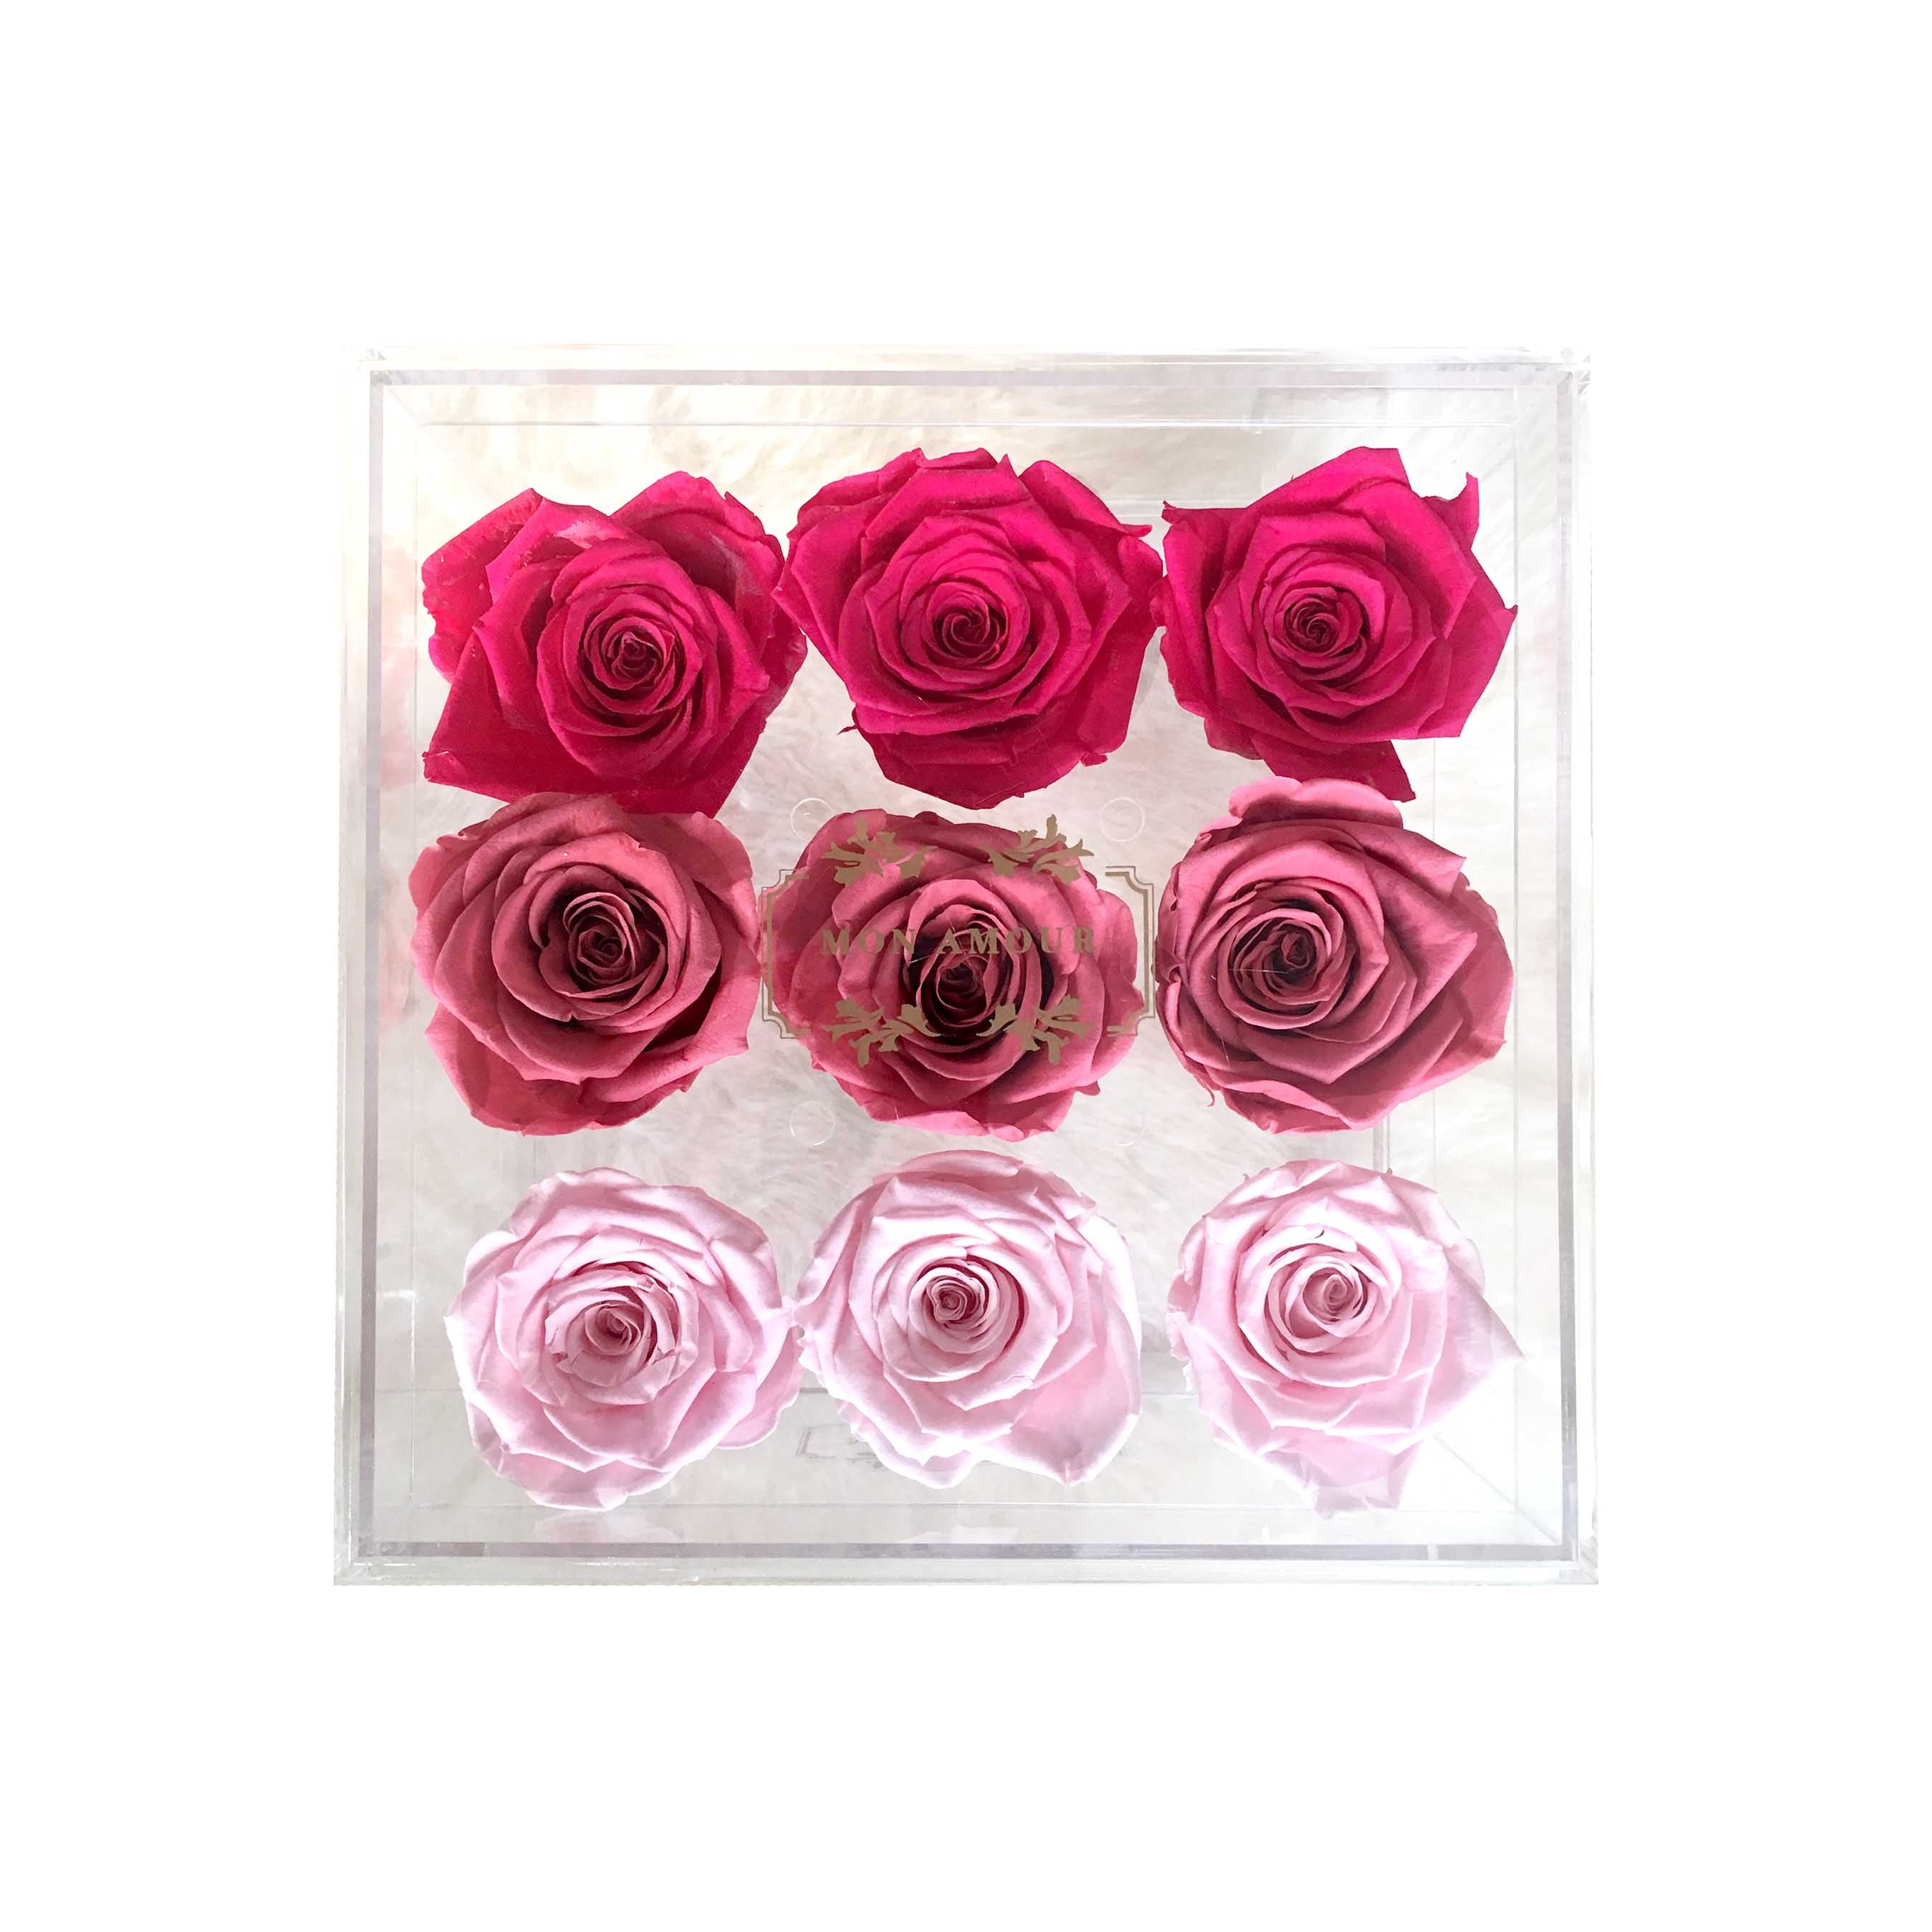 Mon Amour, Rose, Flowers, ombre, Gift idea, Luxury, home decor